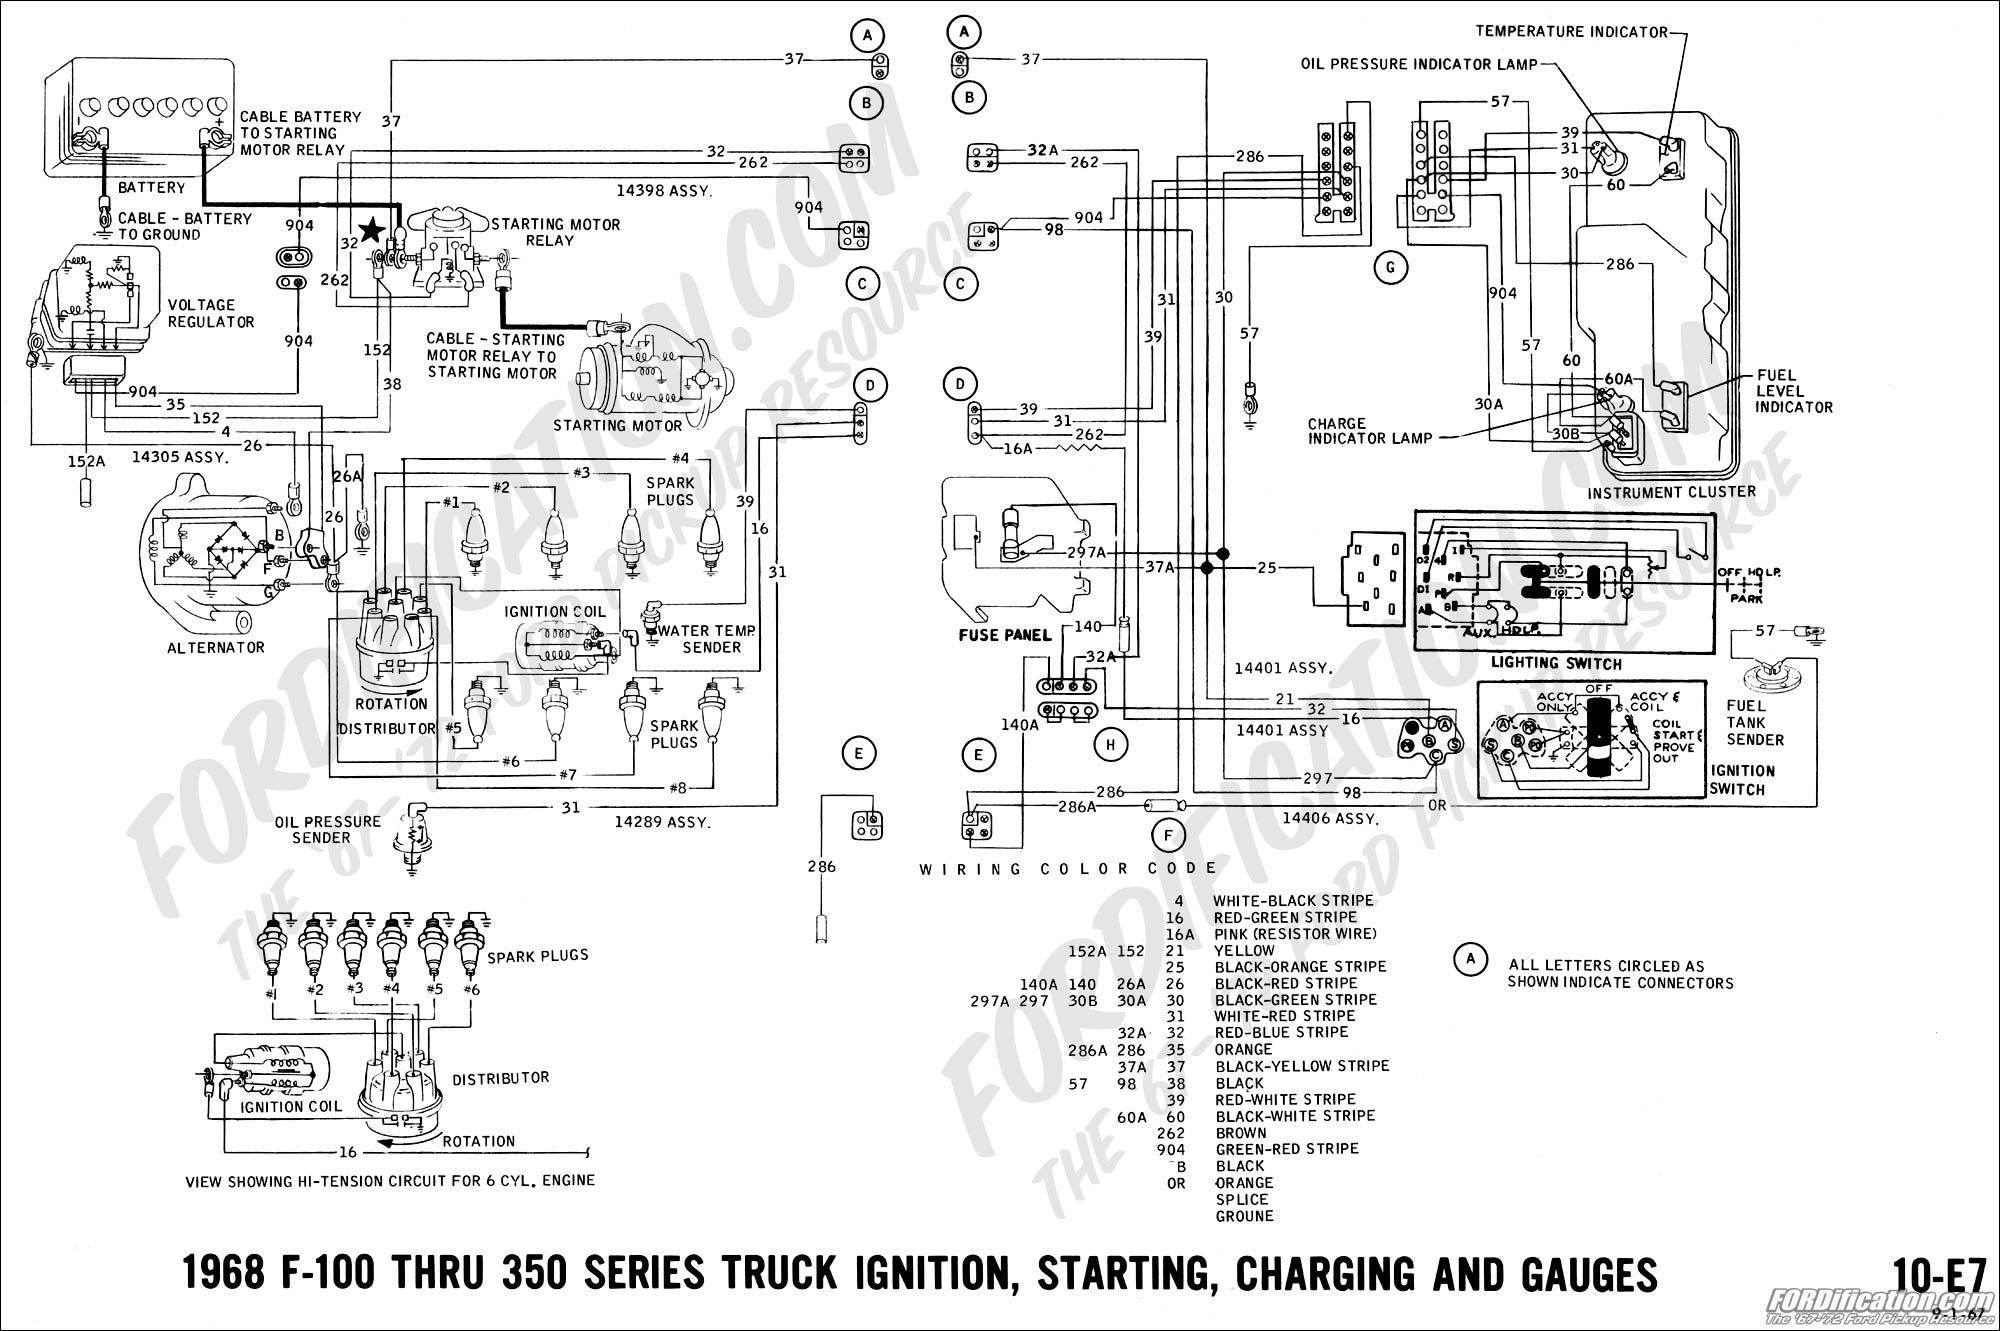 68 09 ford truck technical drawings and schematics section h wiring 2000 ford f150 ignition wiring diagram at honlapkeszites.co